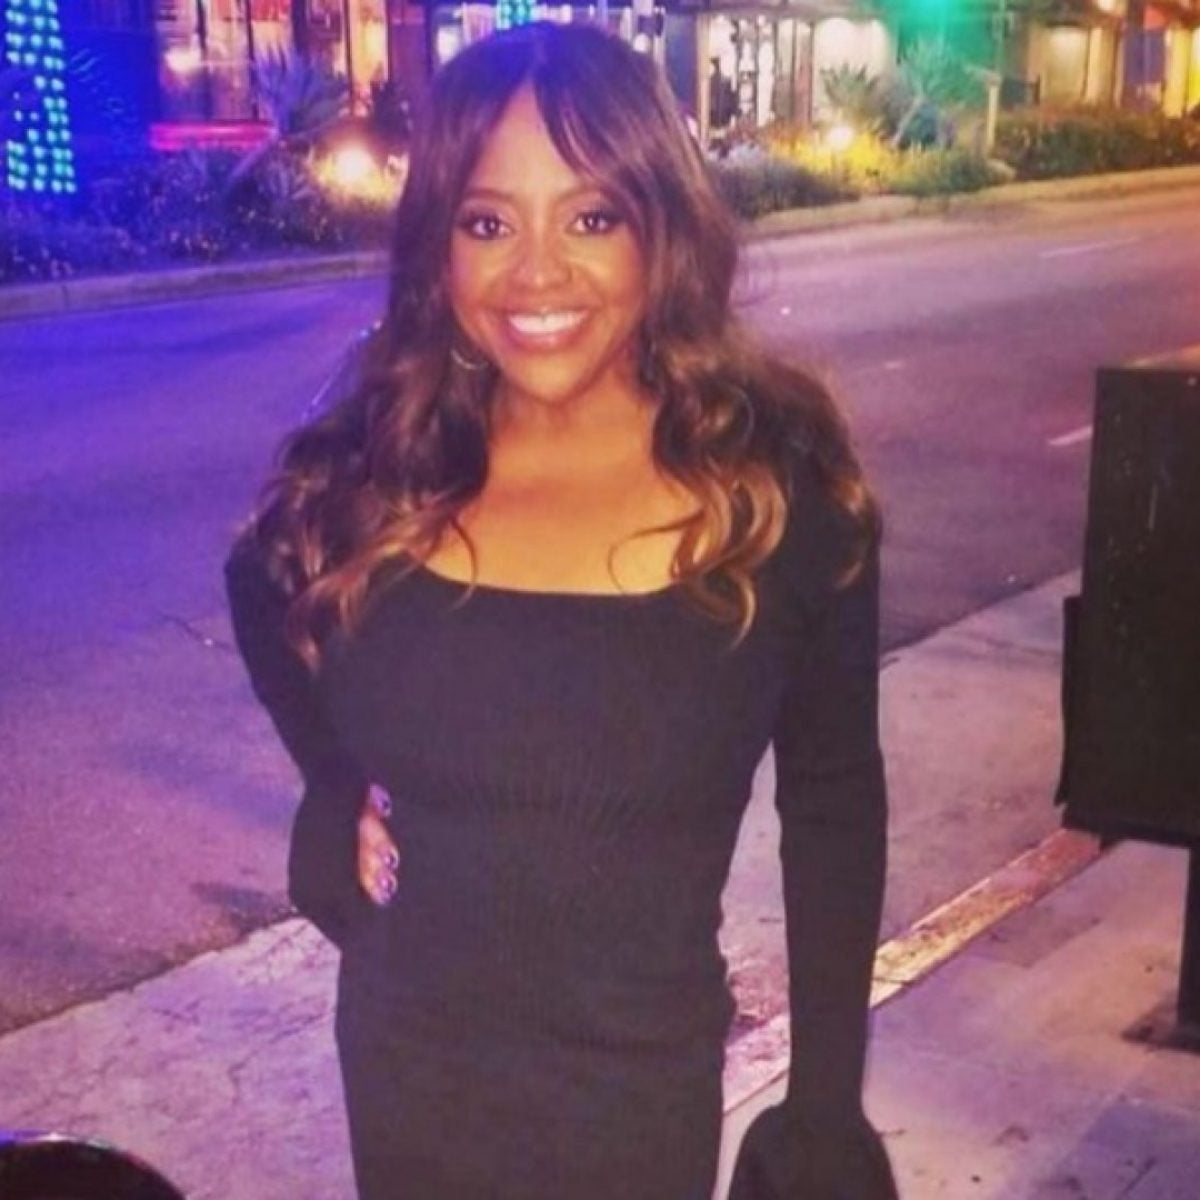 Sherri Shephard Opens Up About Her Weight Loss And Shows Off Her Transformation In A New Video